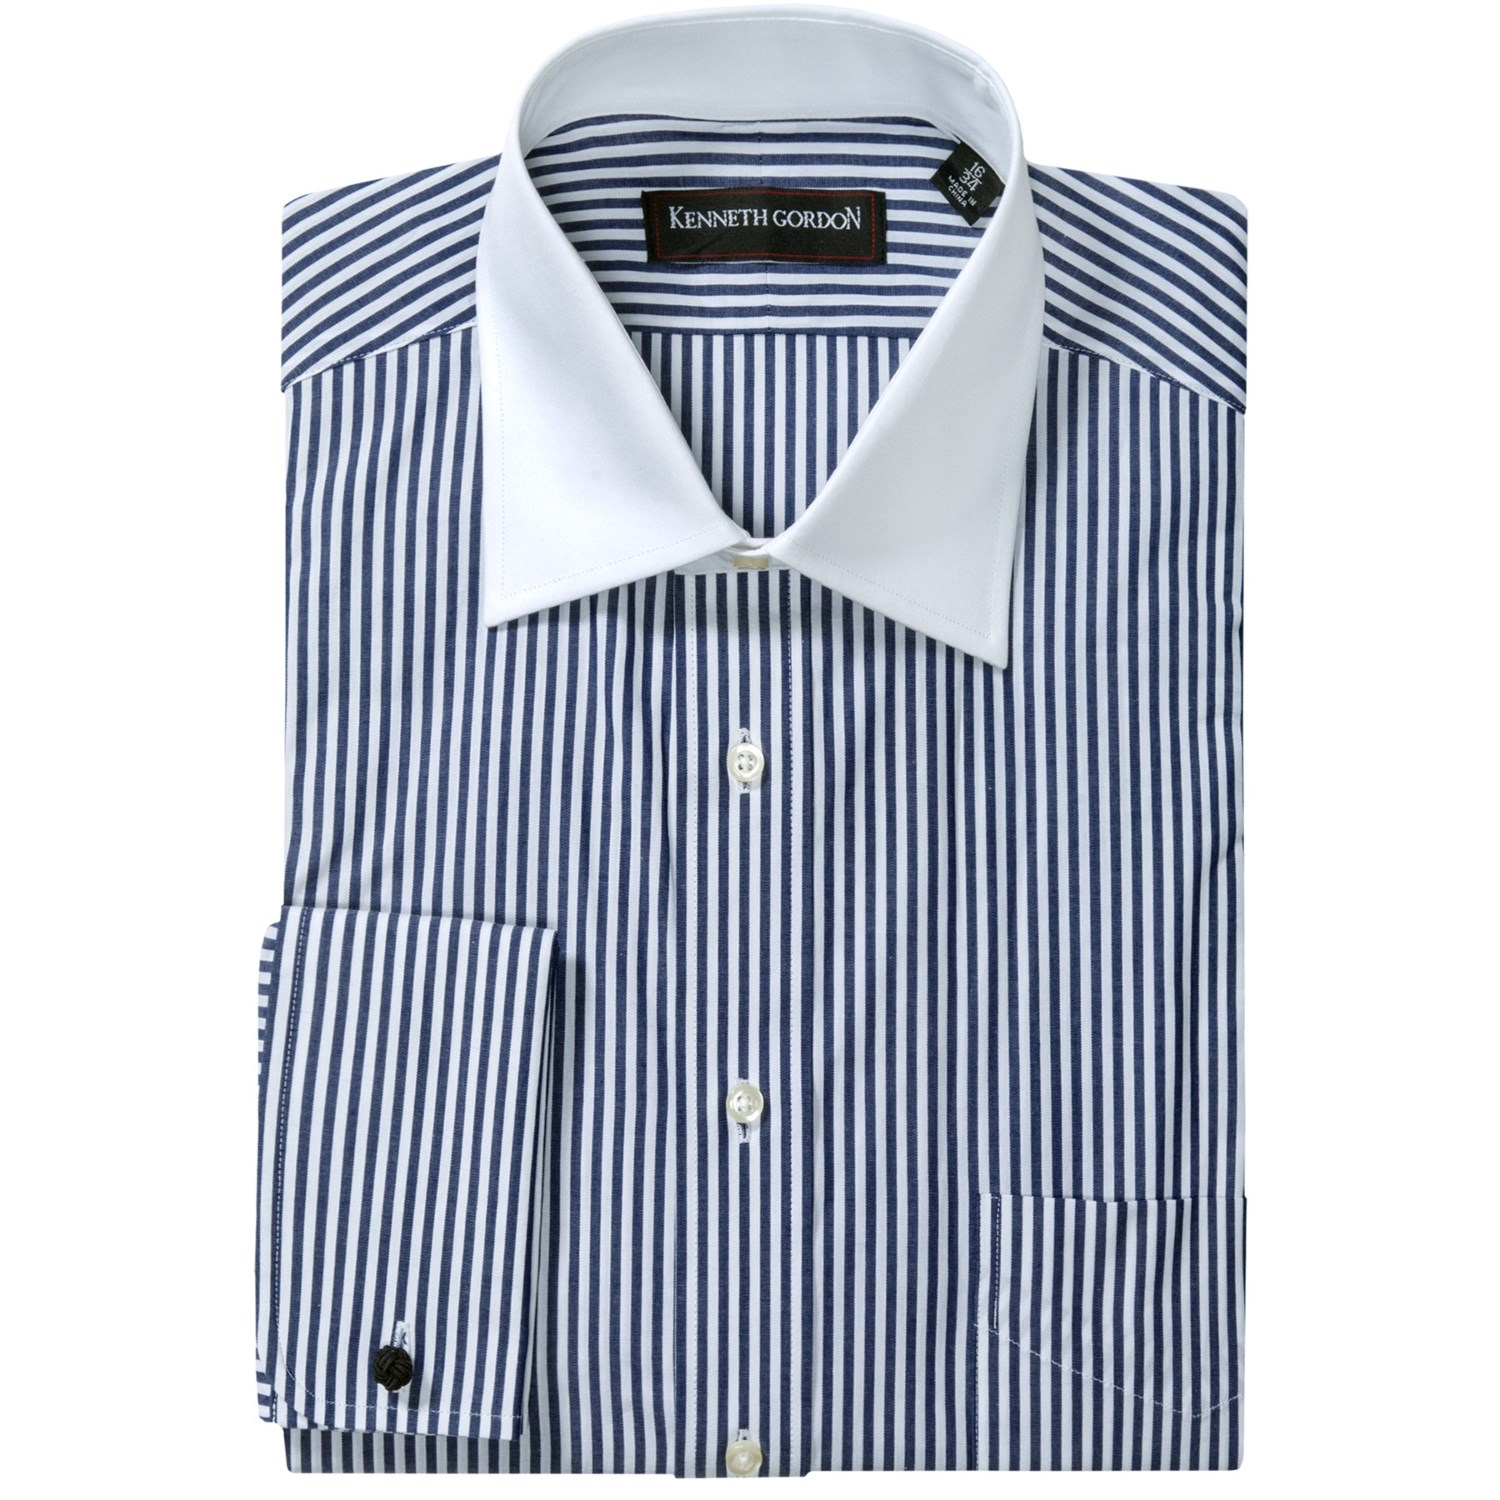 Kenneth gordon french cuff dress shirt for men 5606v for Cuff shirts for men